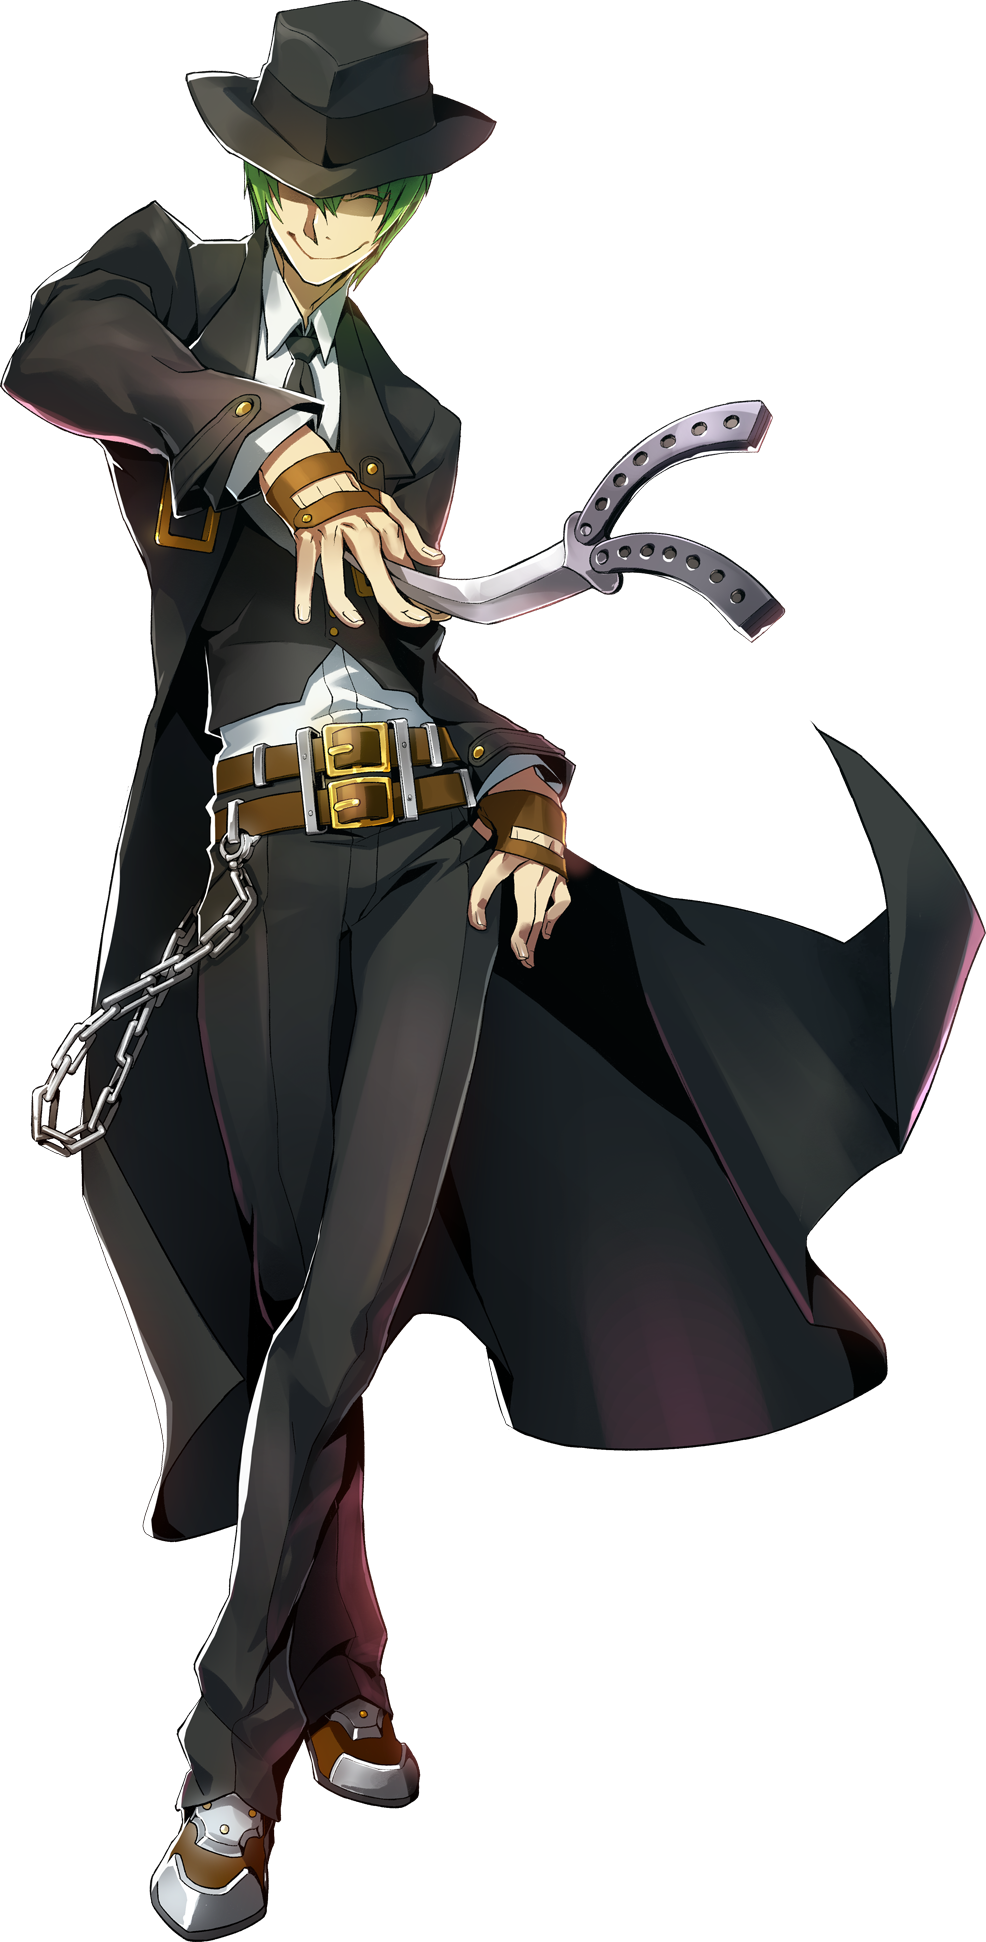 Hazama (Centralfiction, Character Select Artwork)